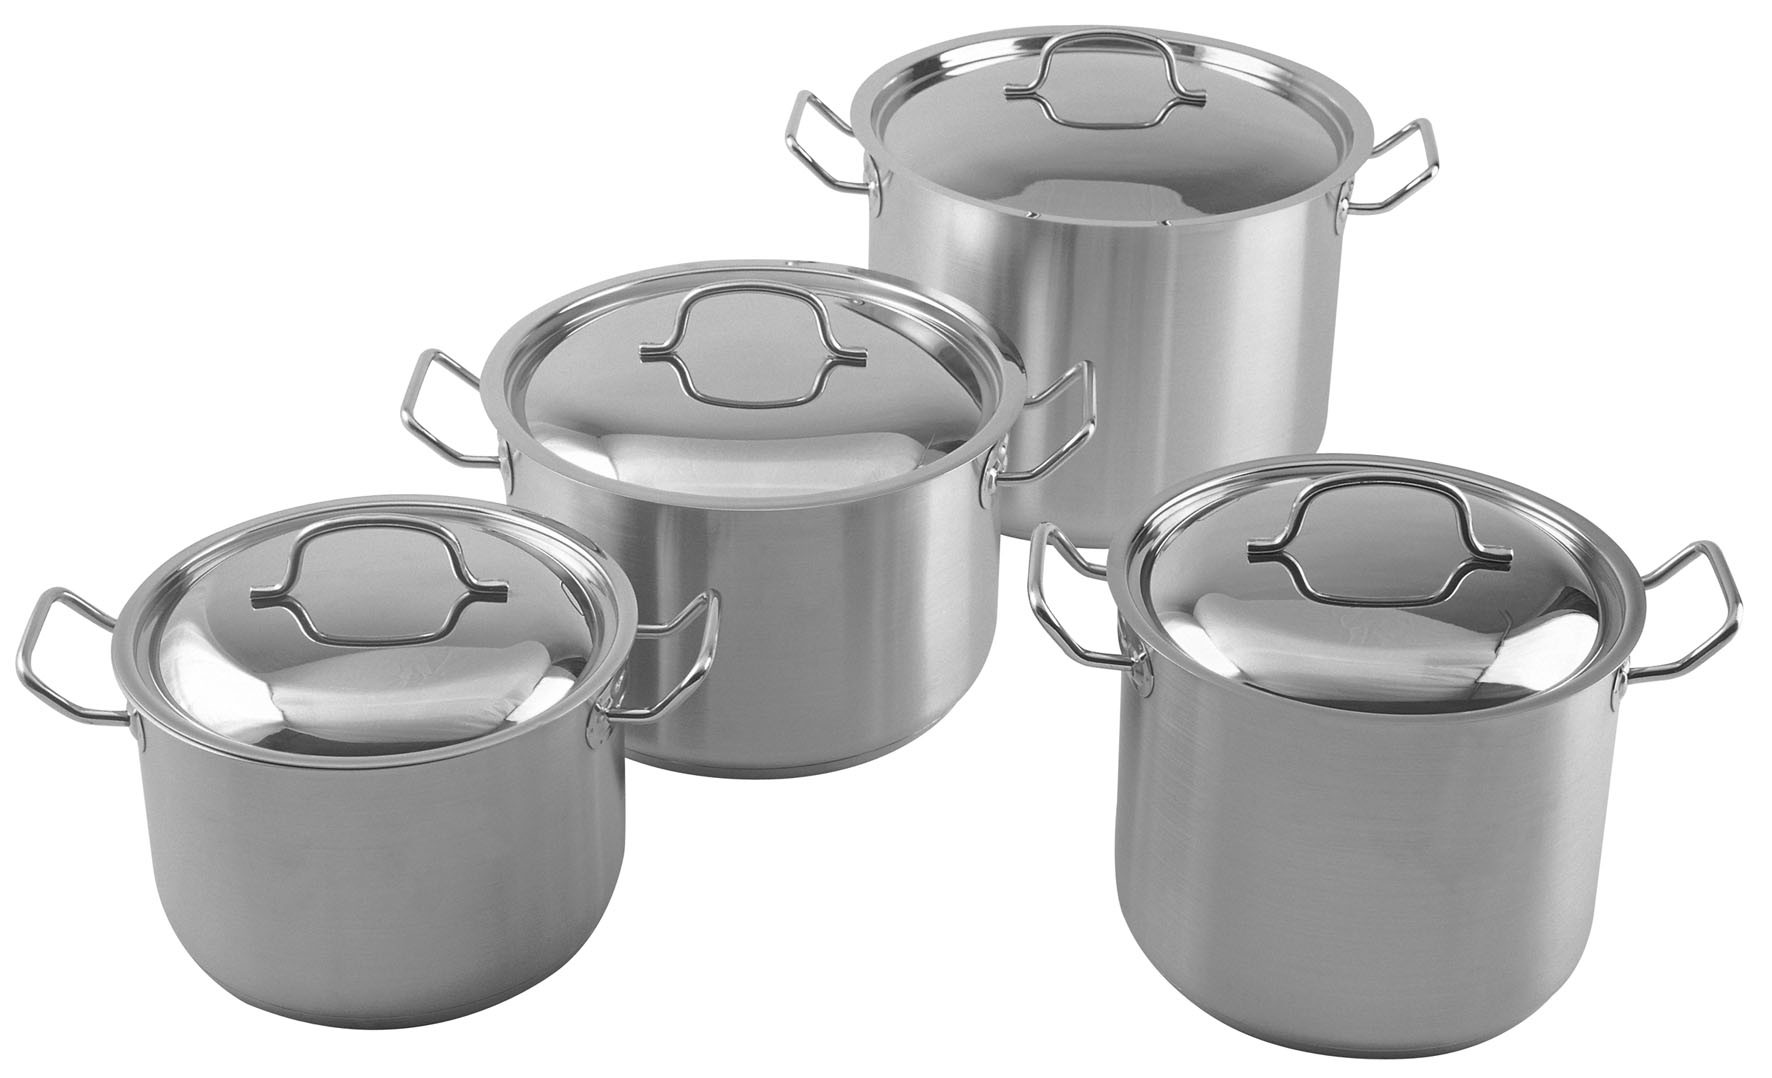 Stainless steel stockpot---SJ094